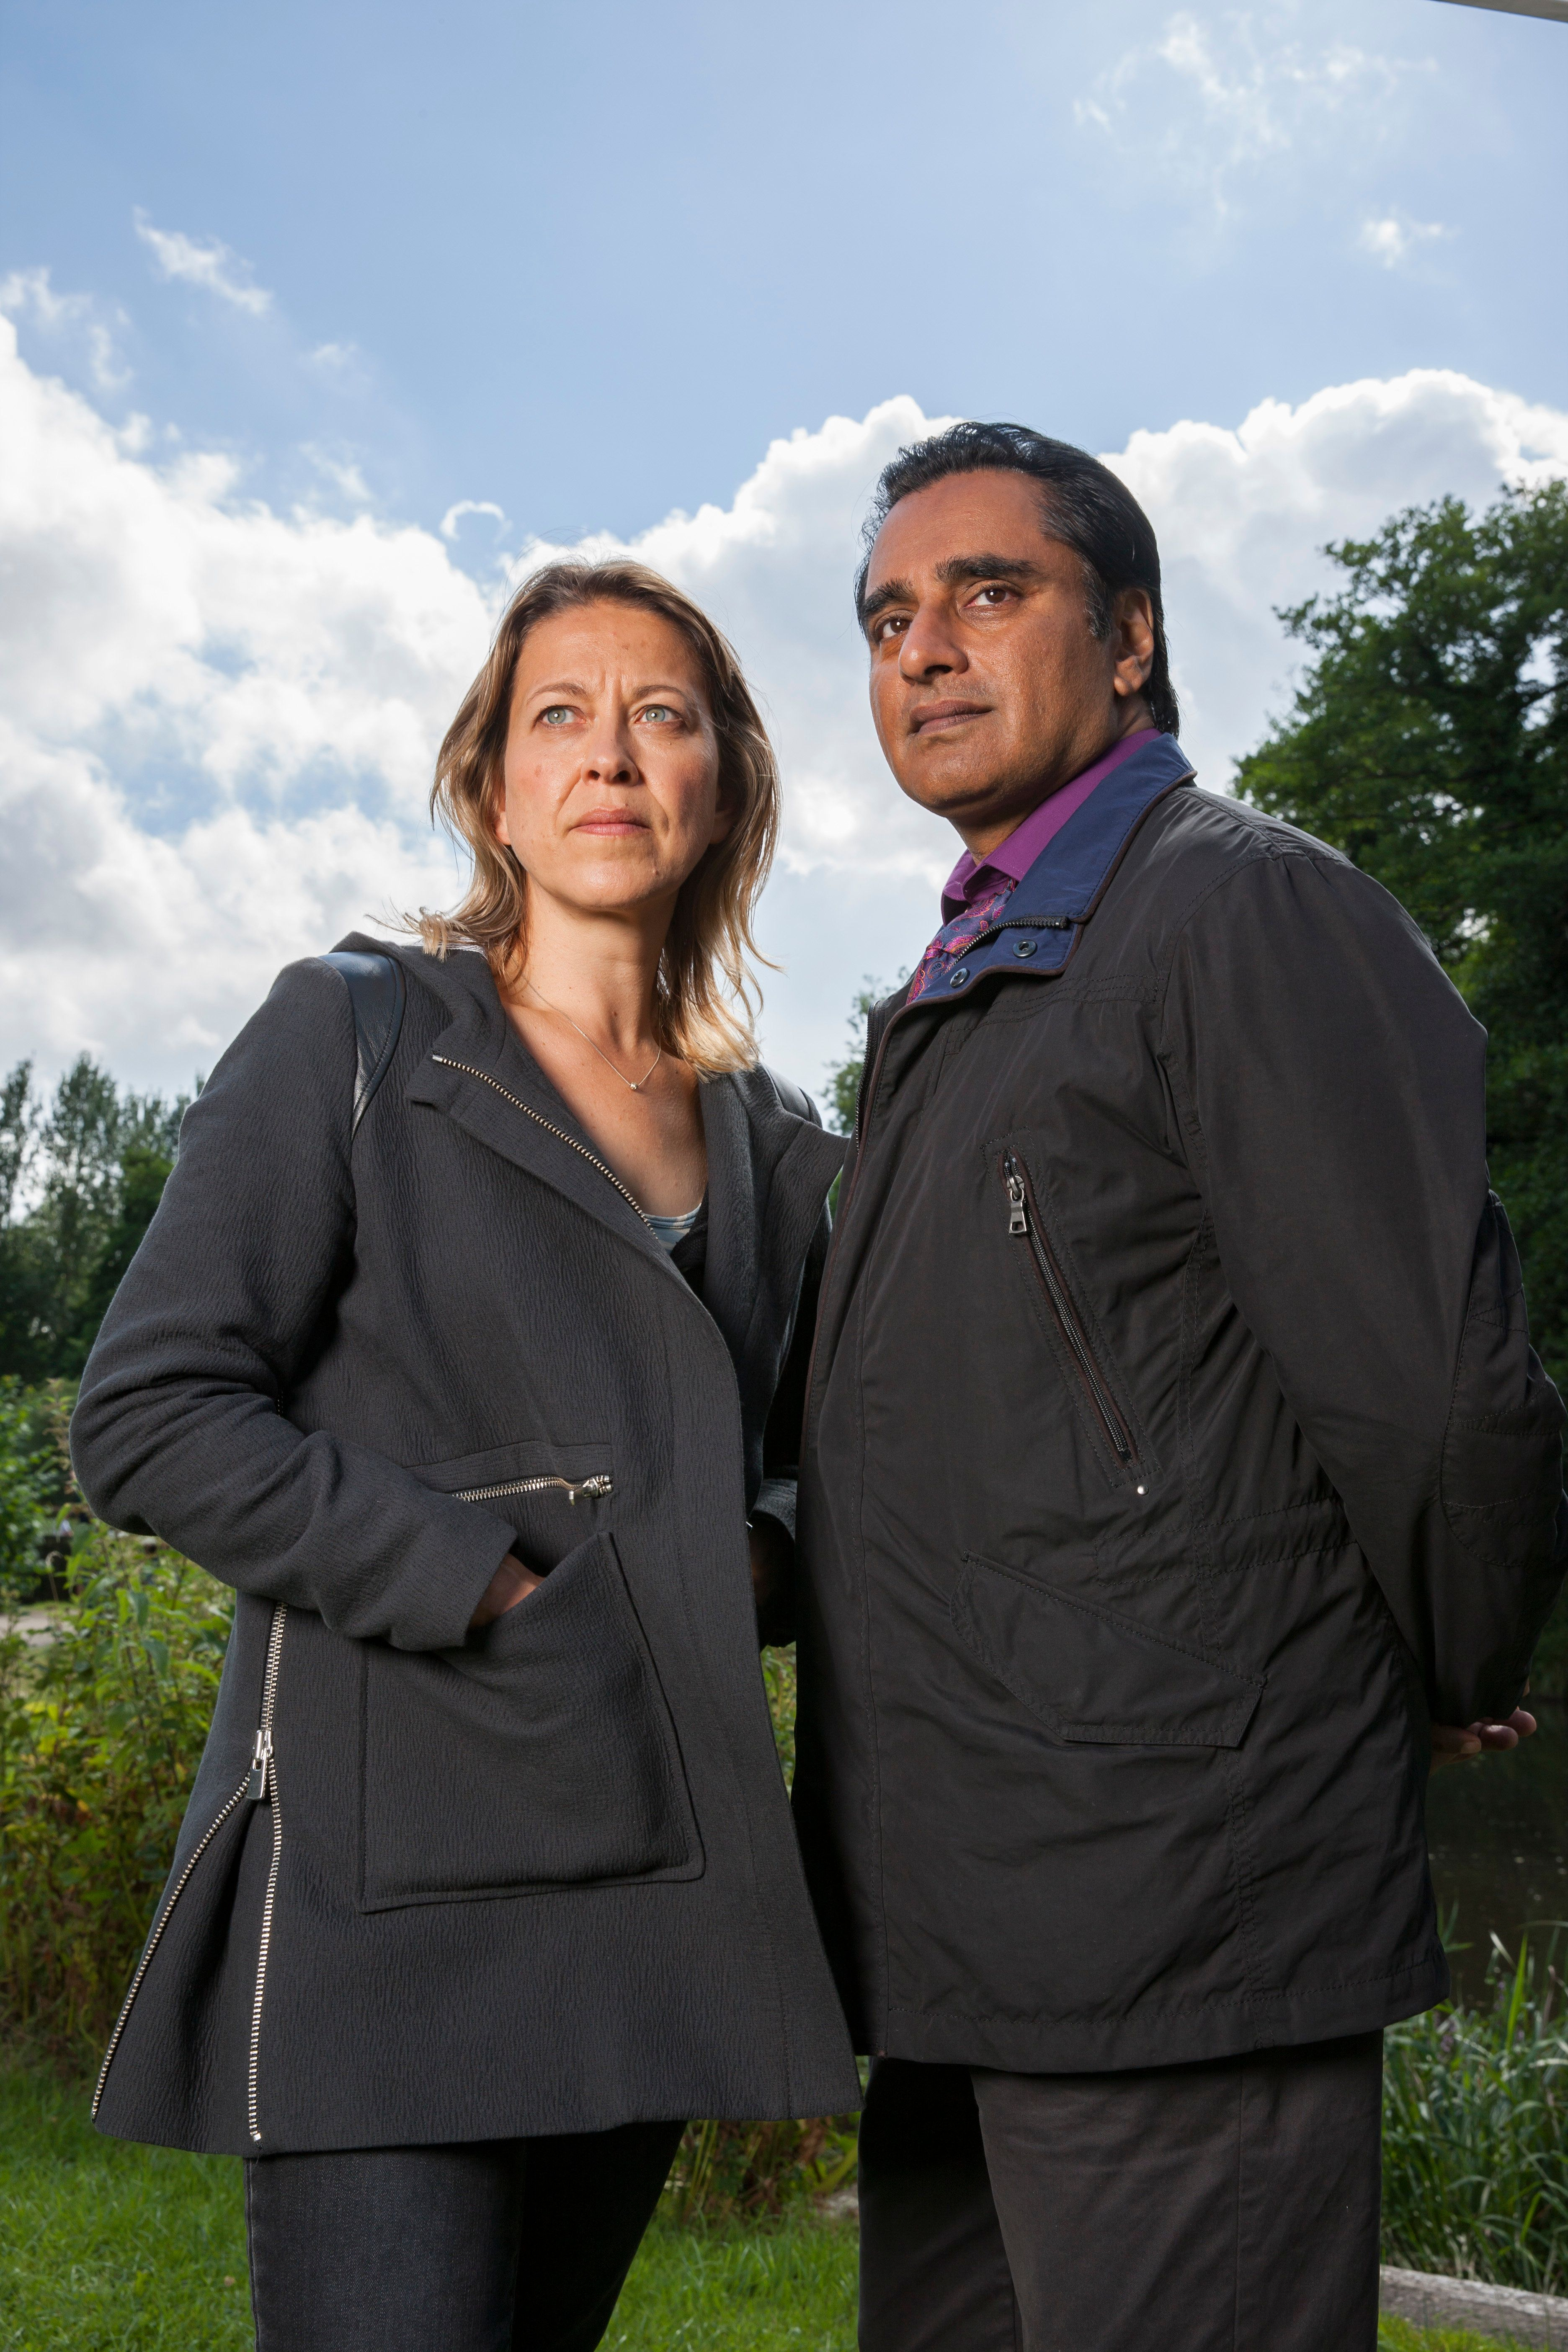 The 'Unforgotten' Cast, And Where You've Seen Them